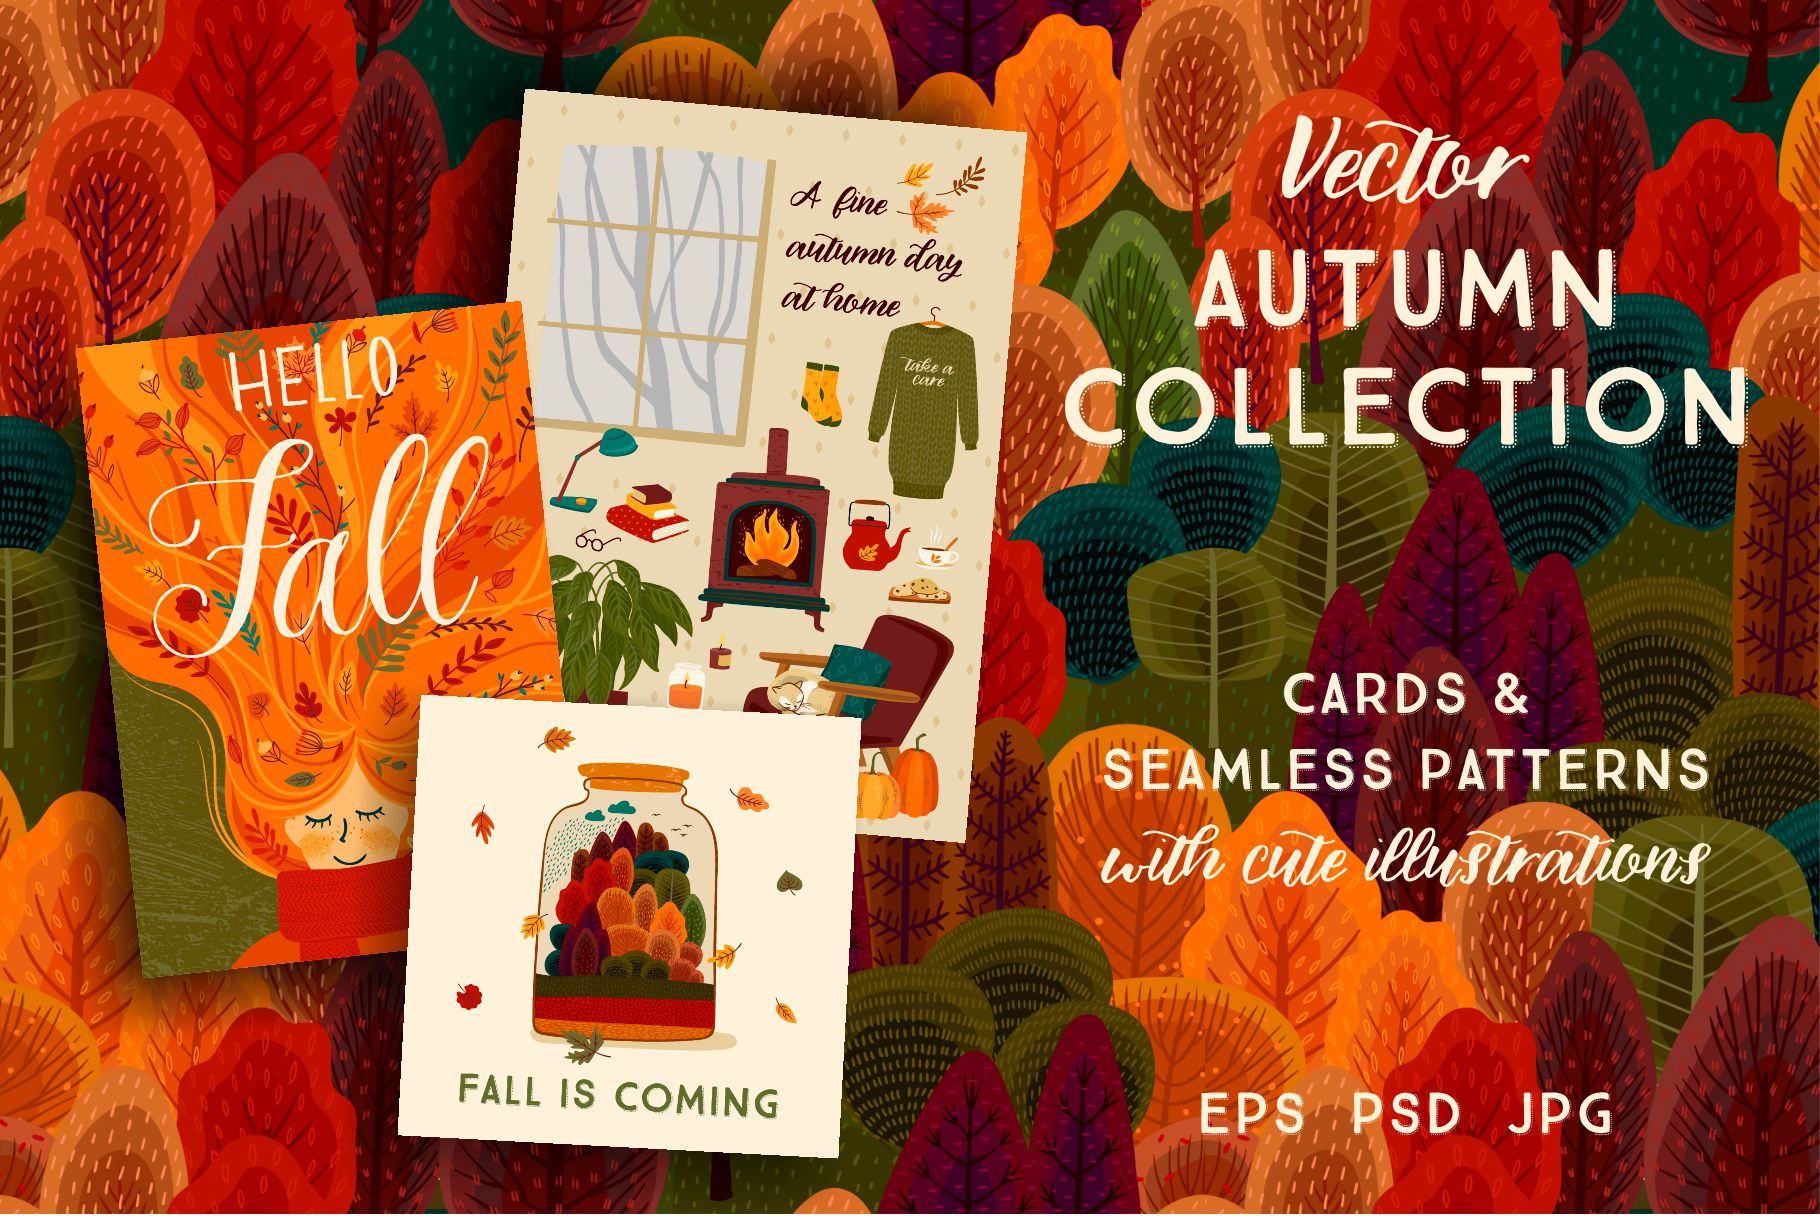 Autumn collection. Cards & patterns. example image 1